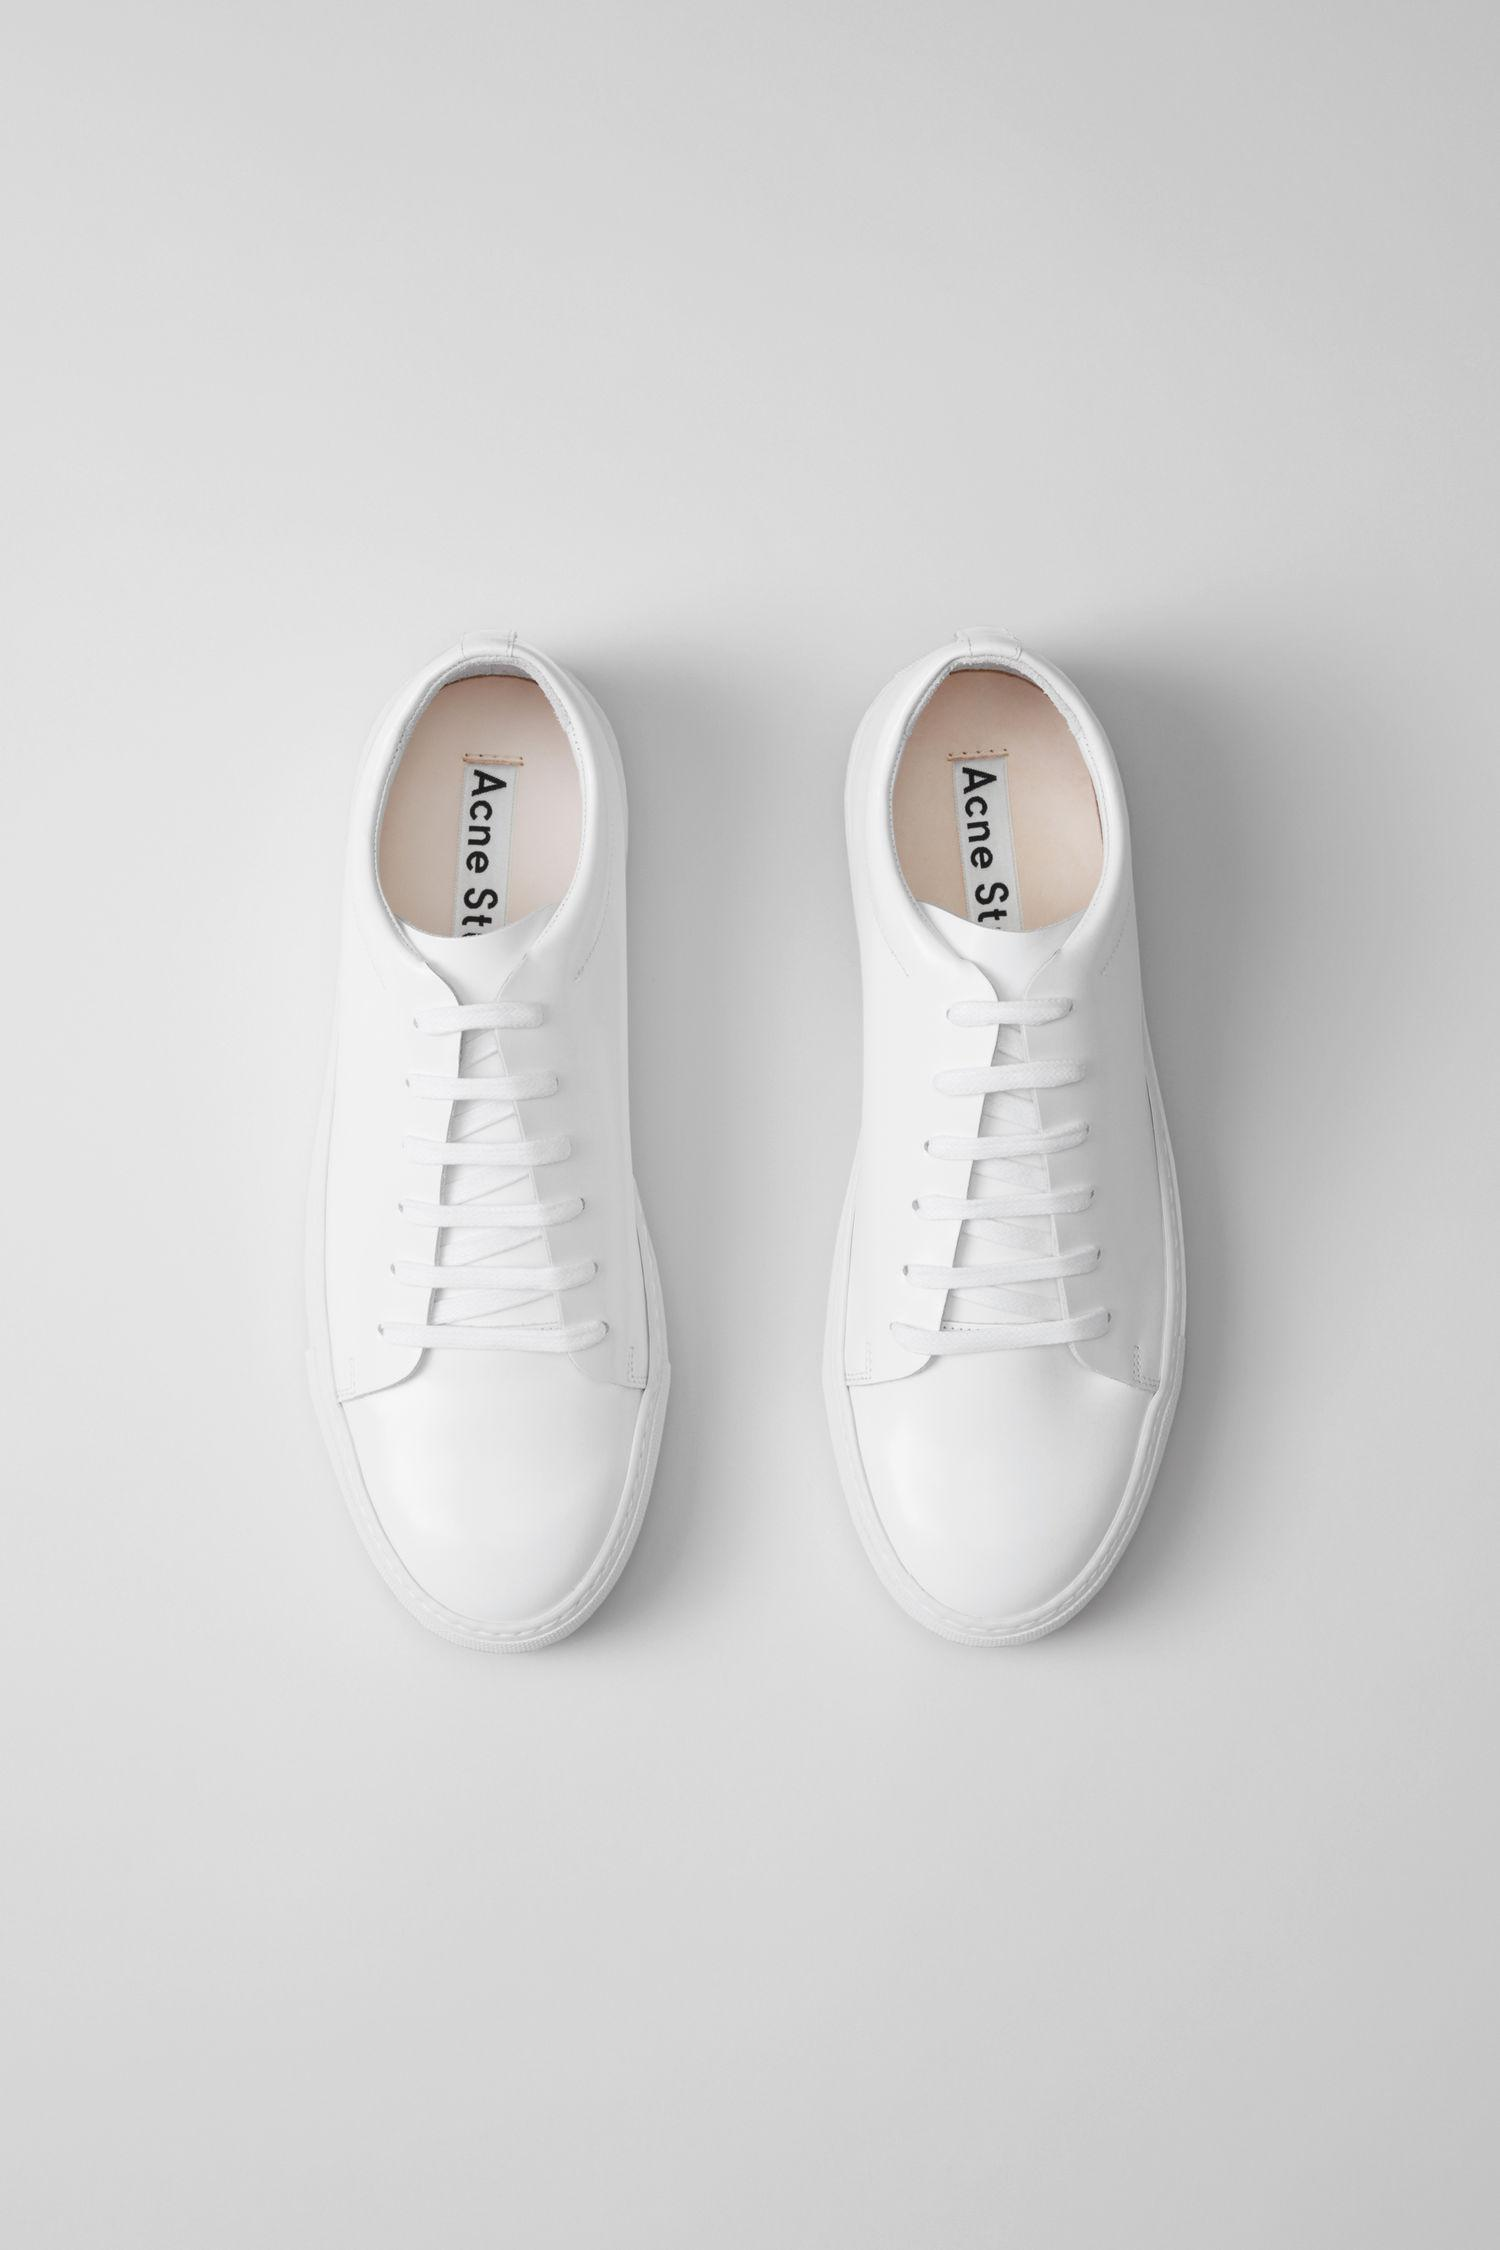 Acne Studios Leather Tennis Shoes white